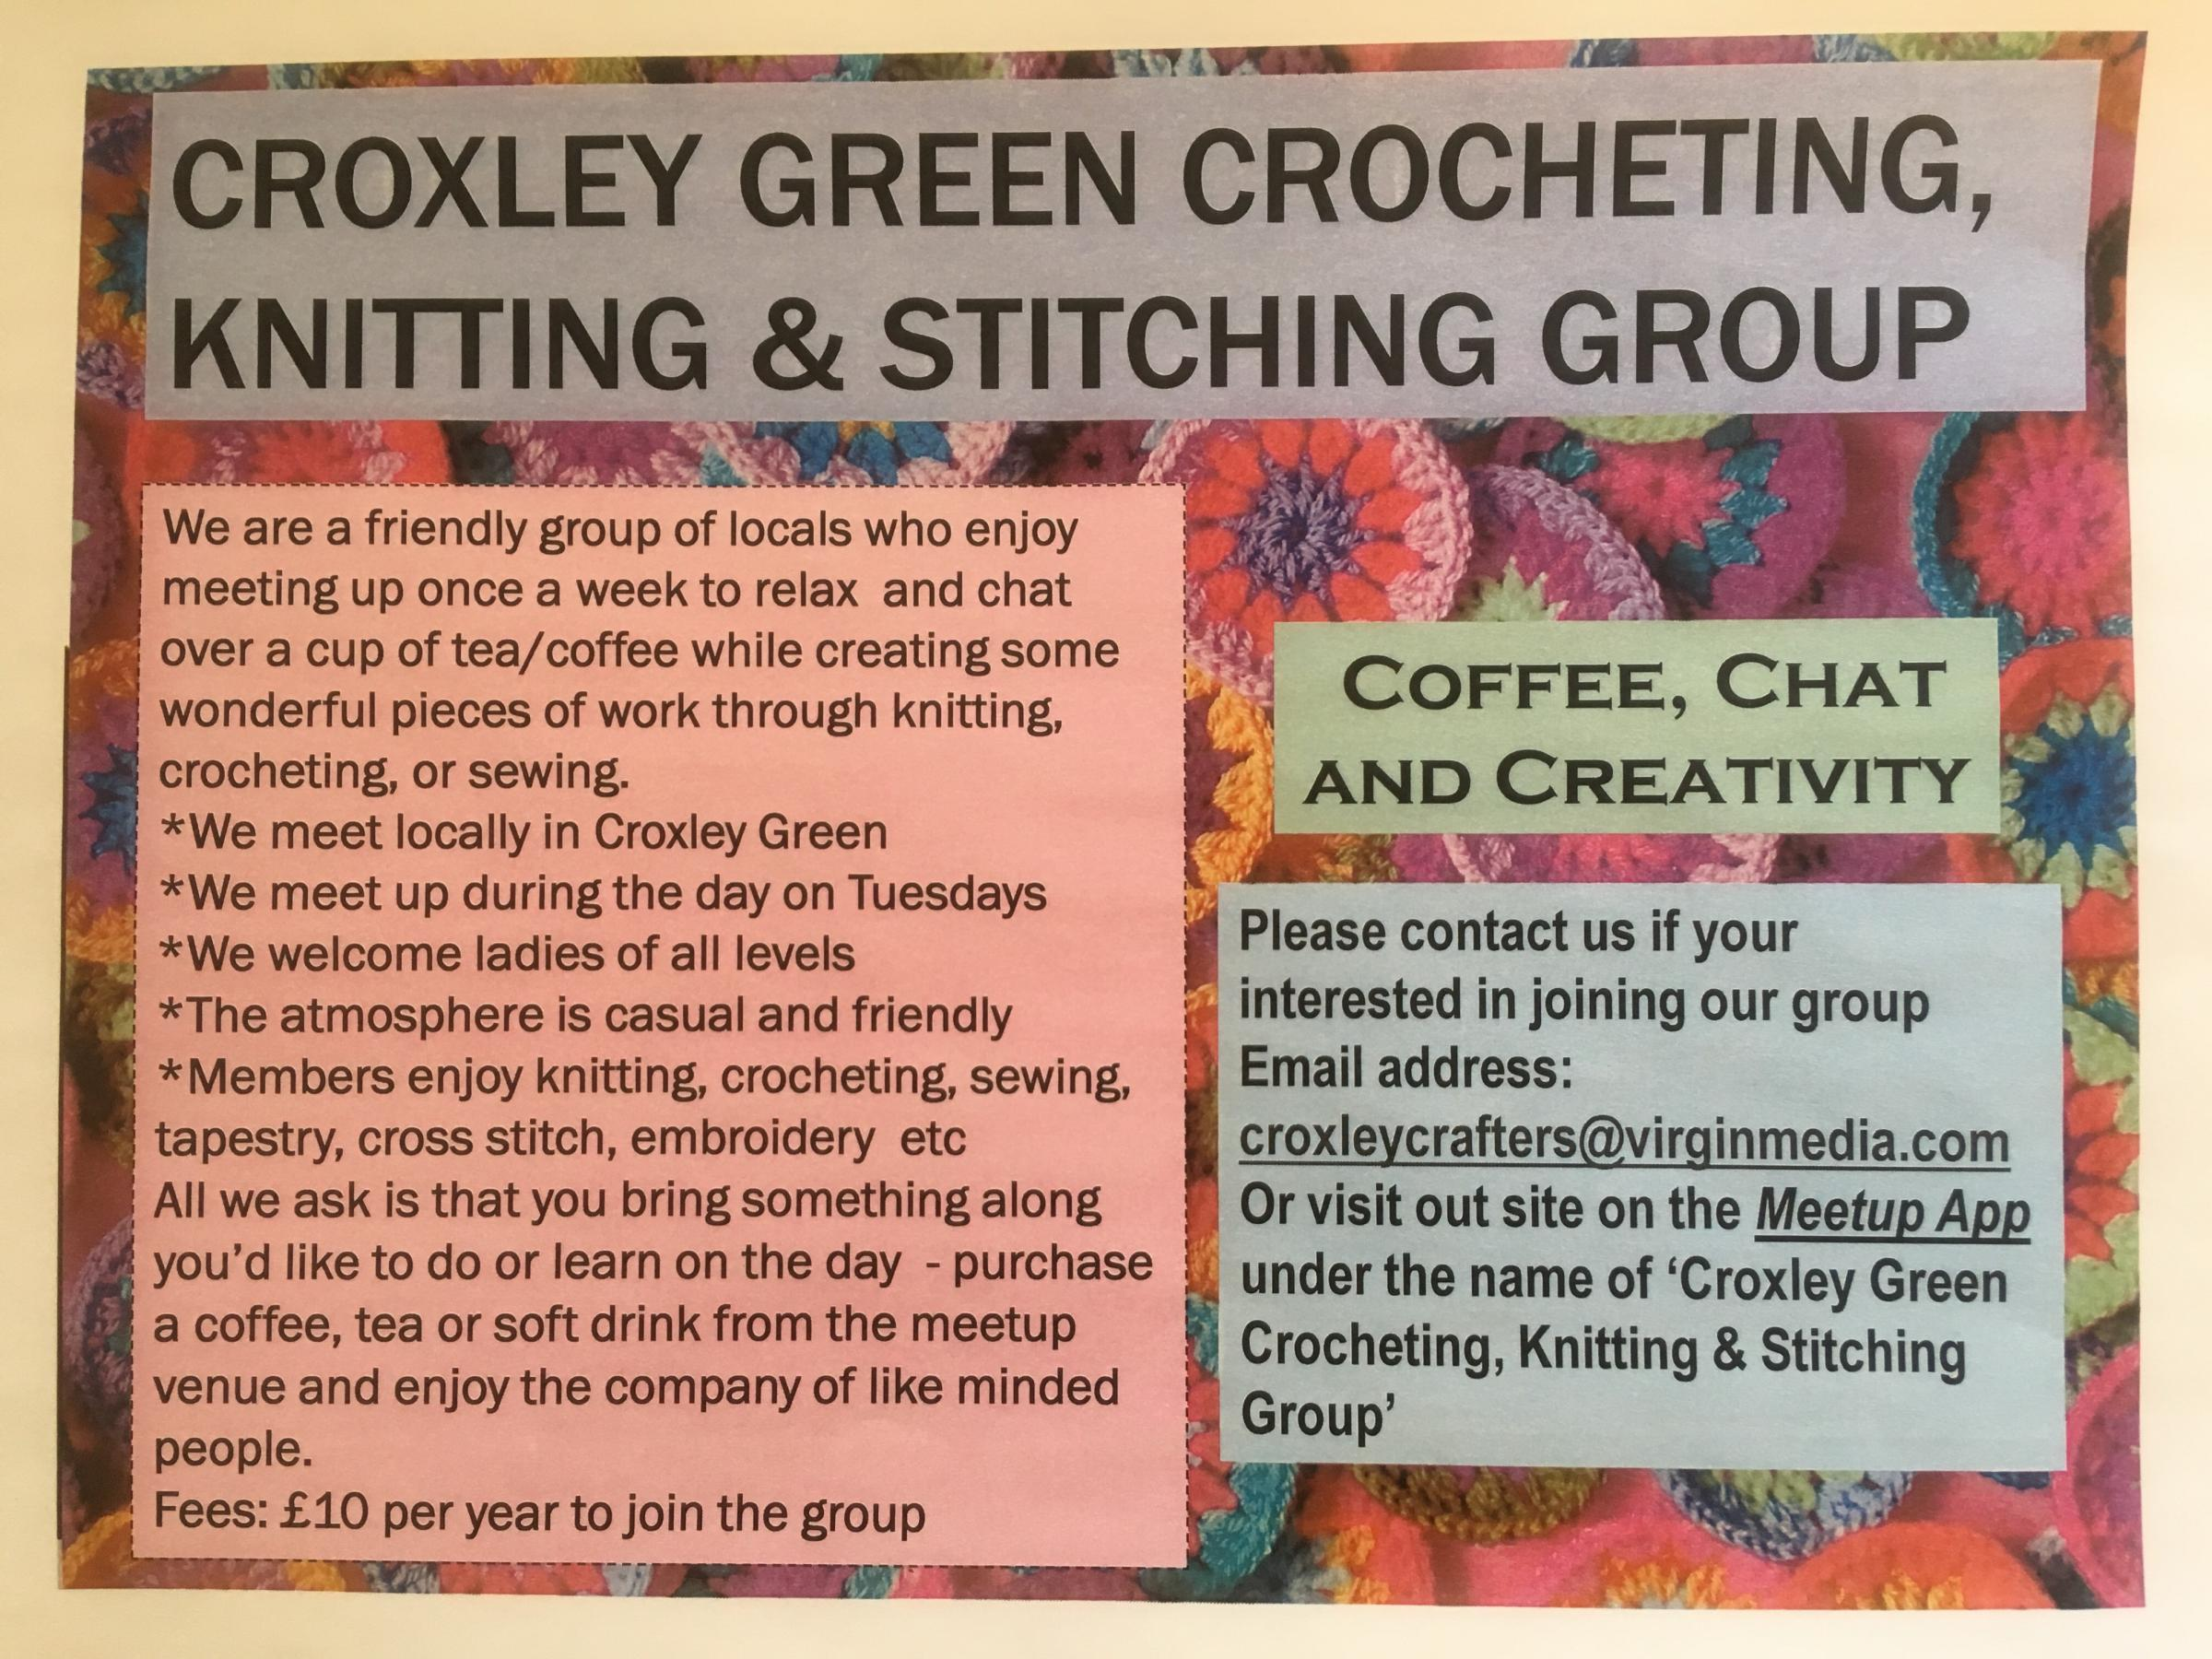 Croxley Green Crocheting Knitting & Stitching Group